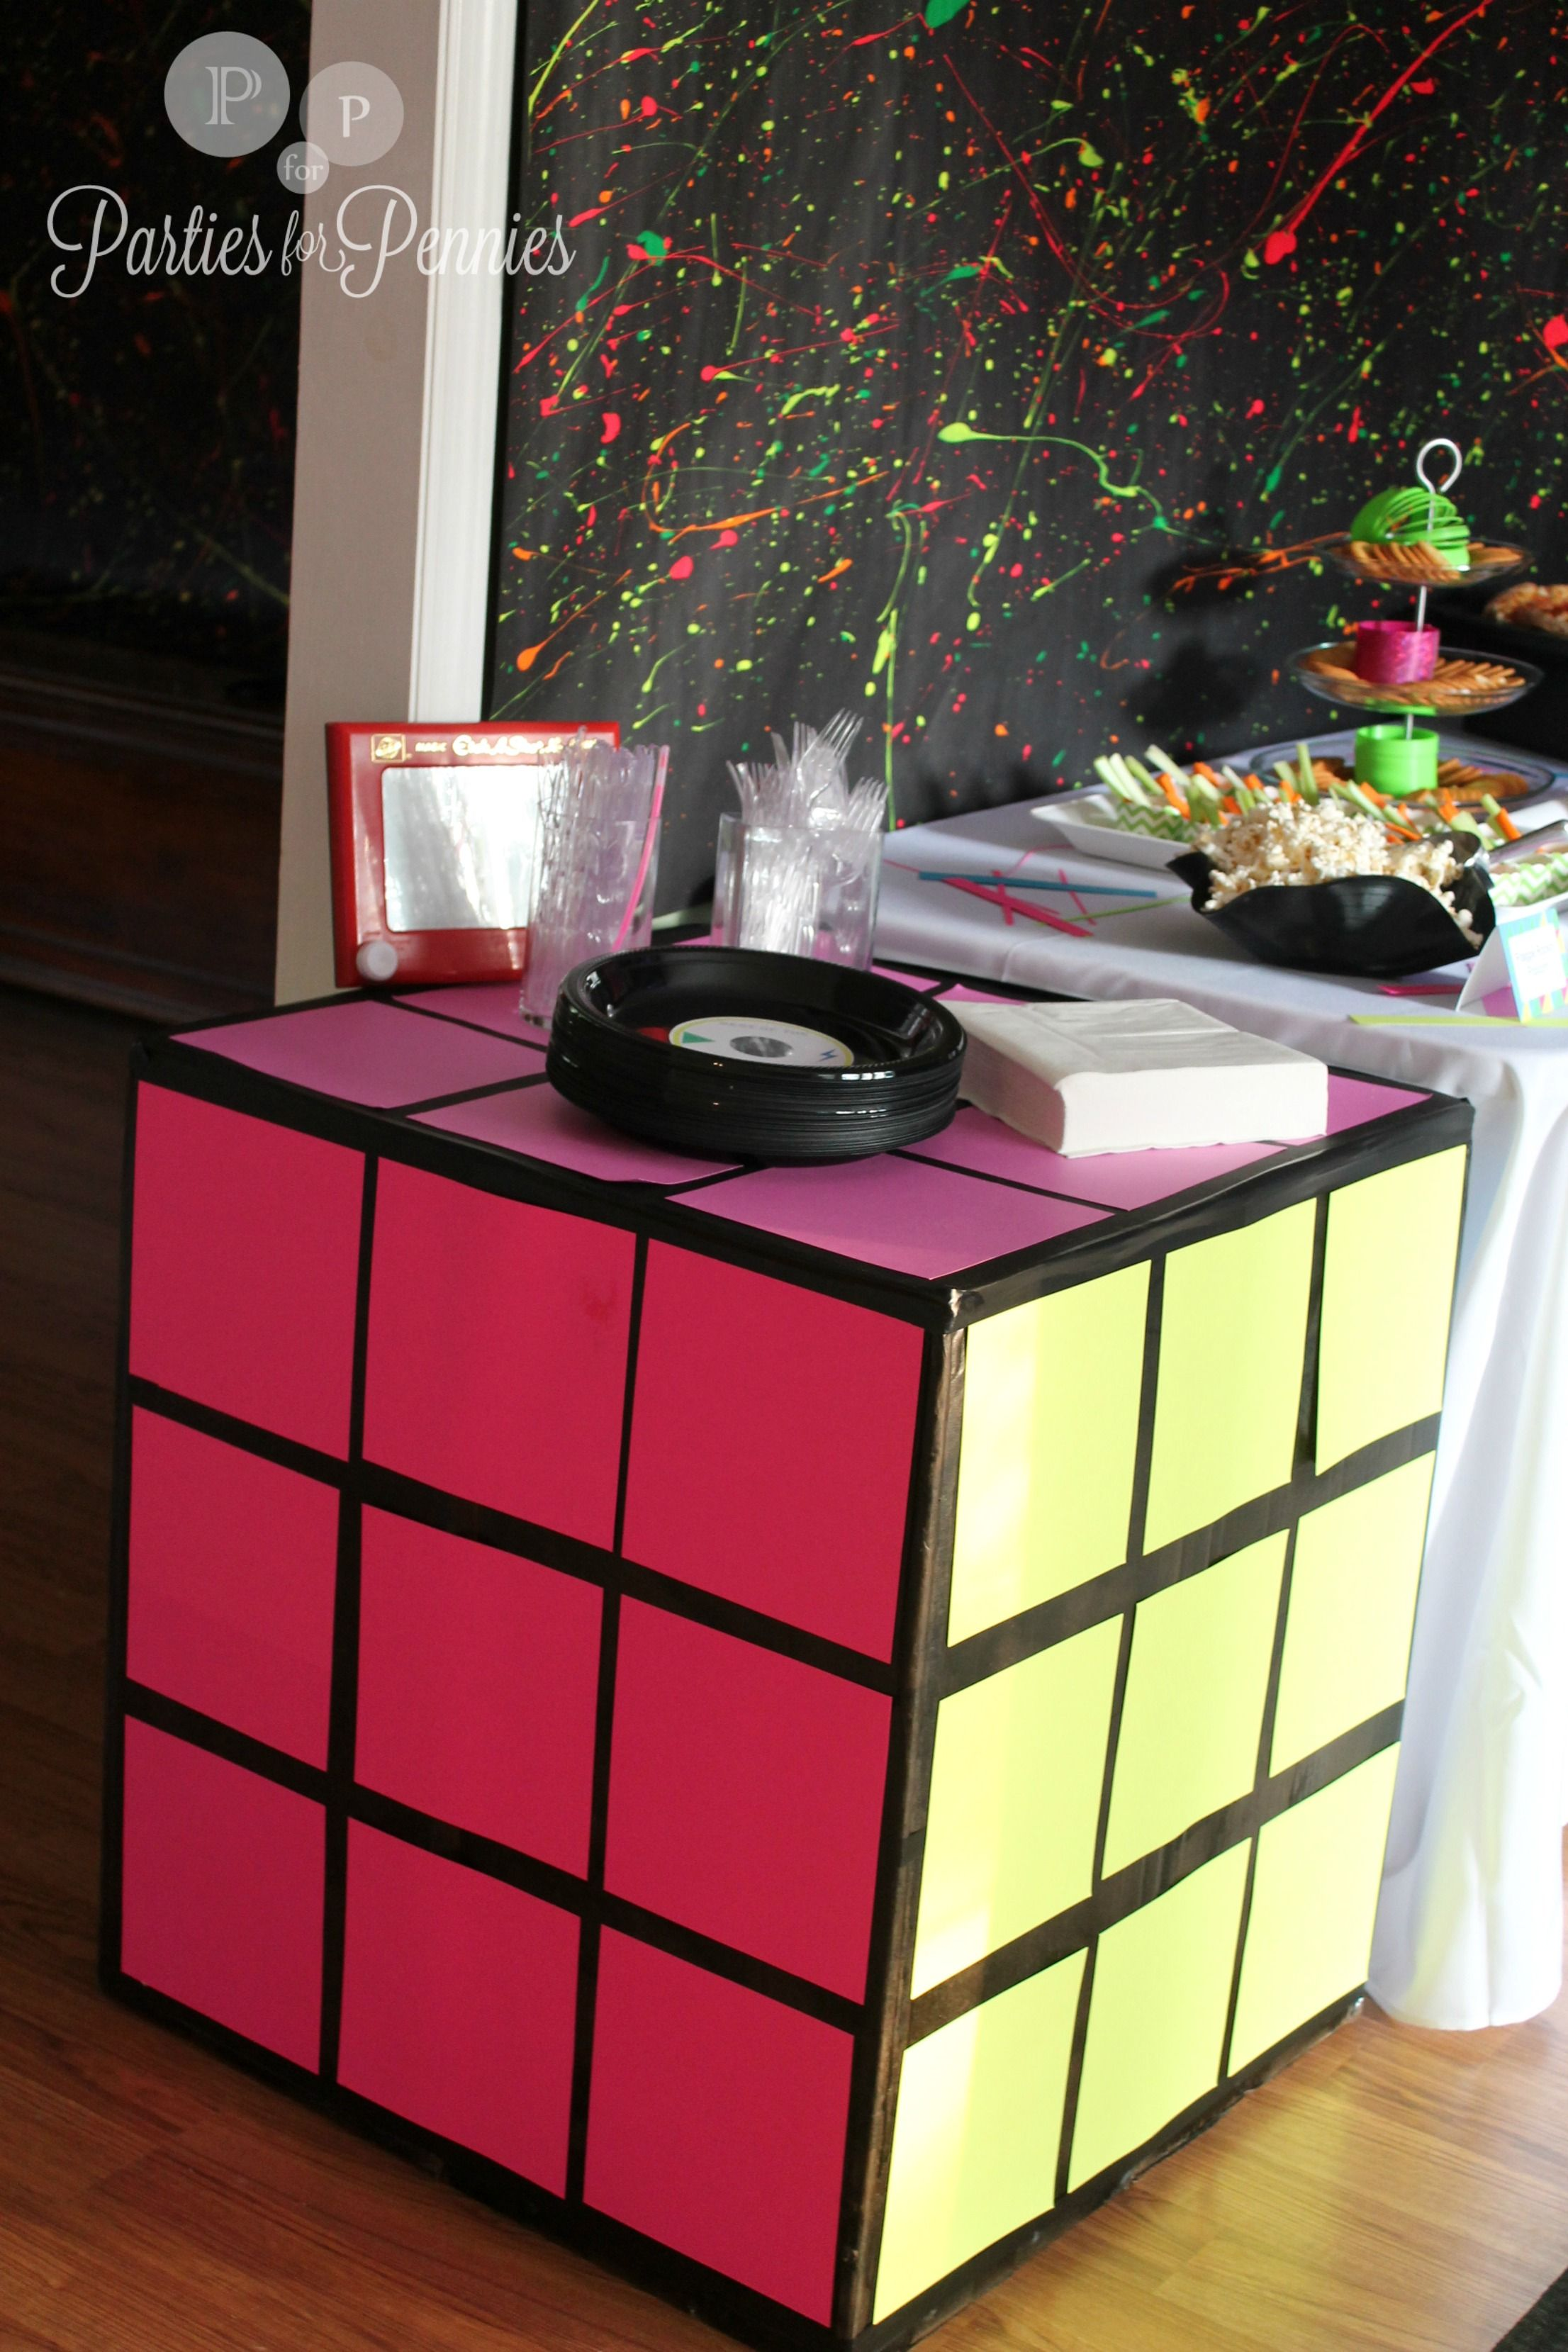 80s Party | 80s party, Cube and Cardboard boxes